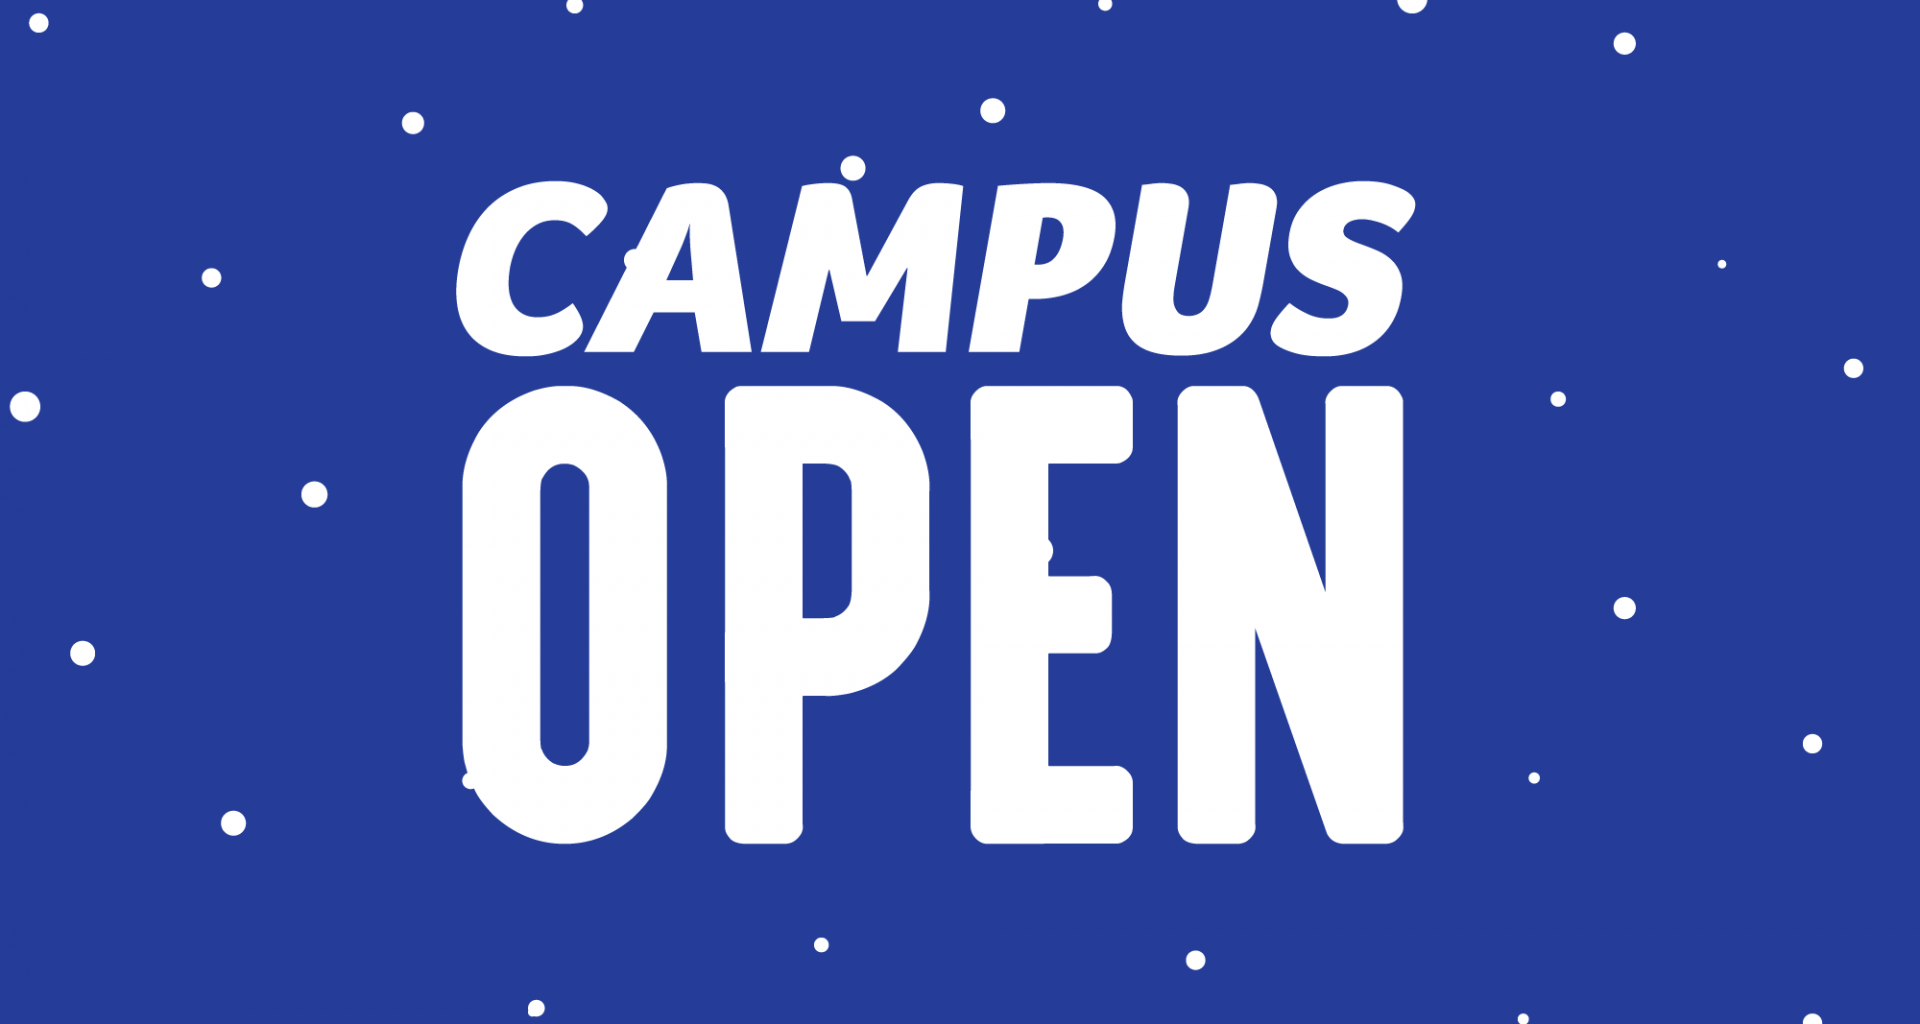 Campus Open grphic